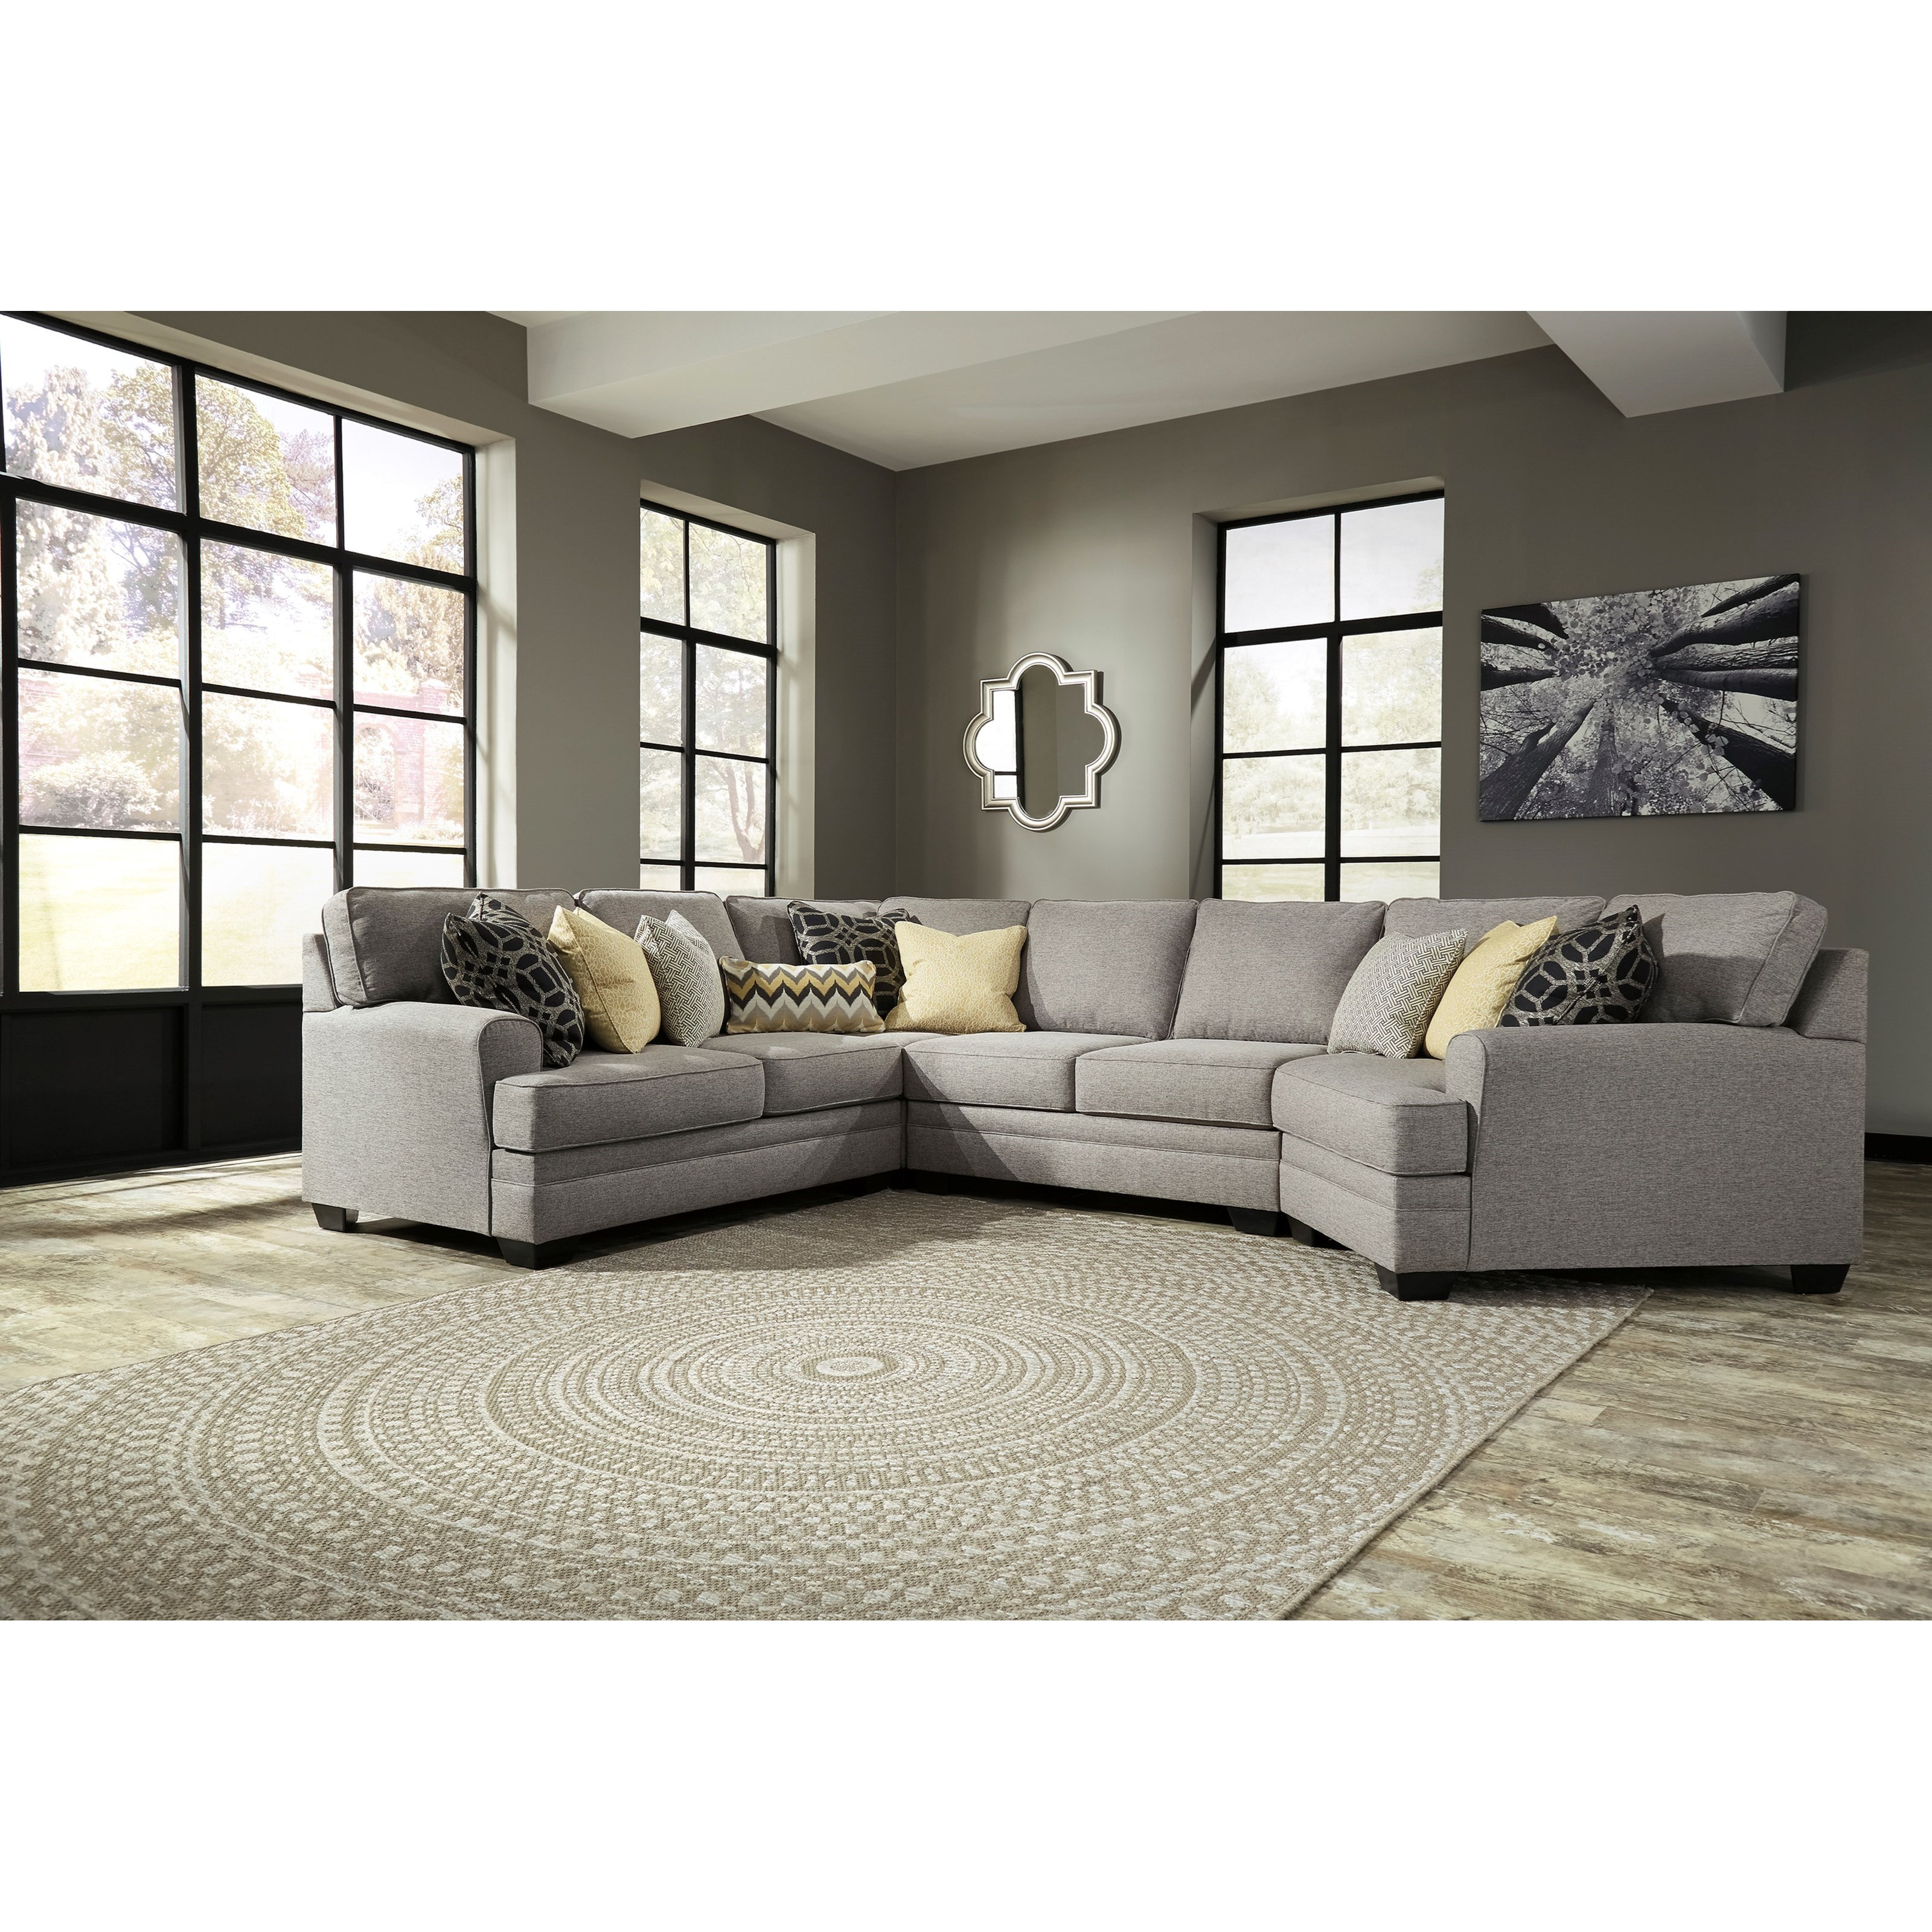 Benchcraft Cresson 4-Piece Sectional with Cuddler - Item Number: 5490755+77+34+75